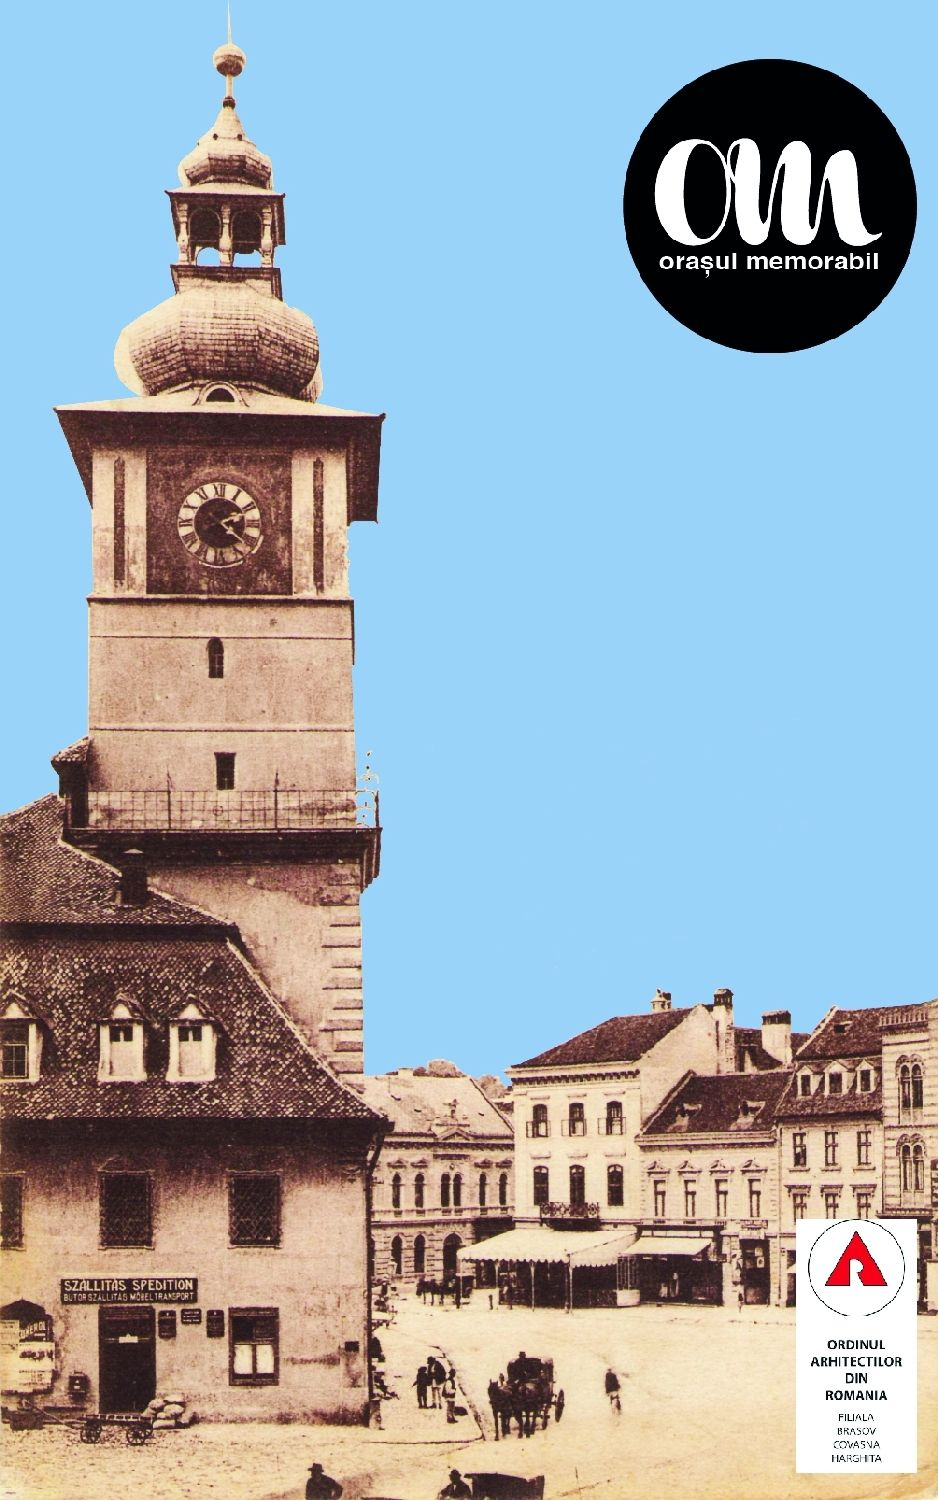 Poster of the Oraşul Memorabil project displaying the old town hall of Braşov